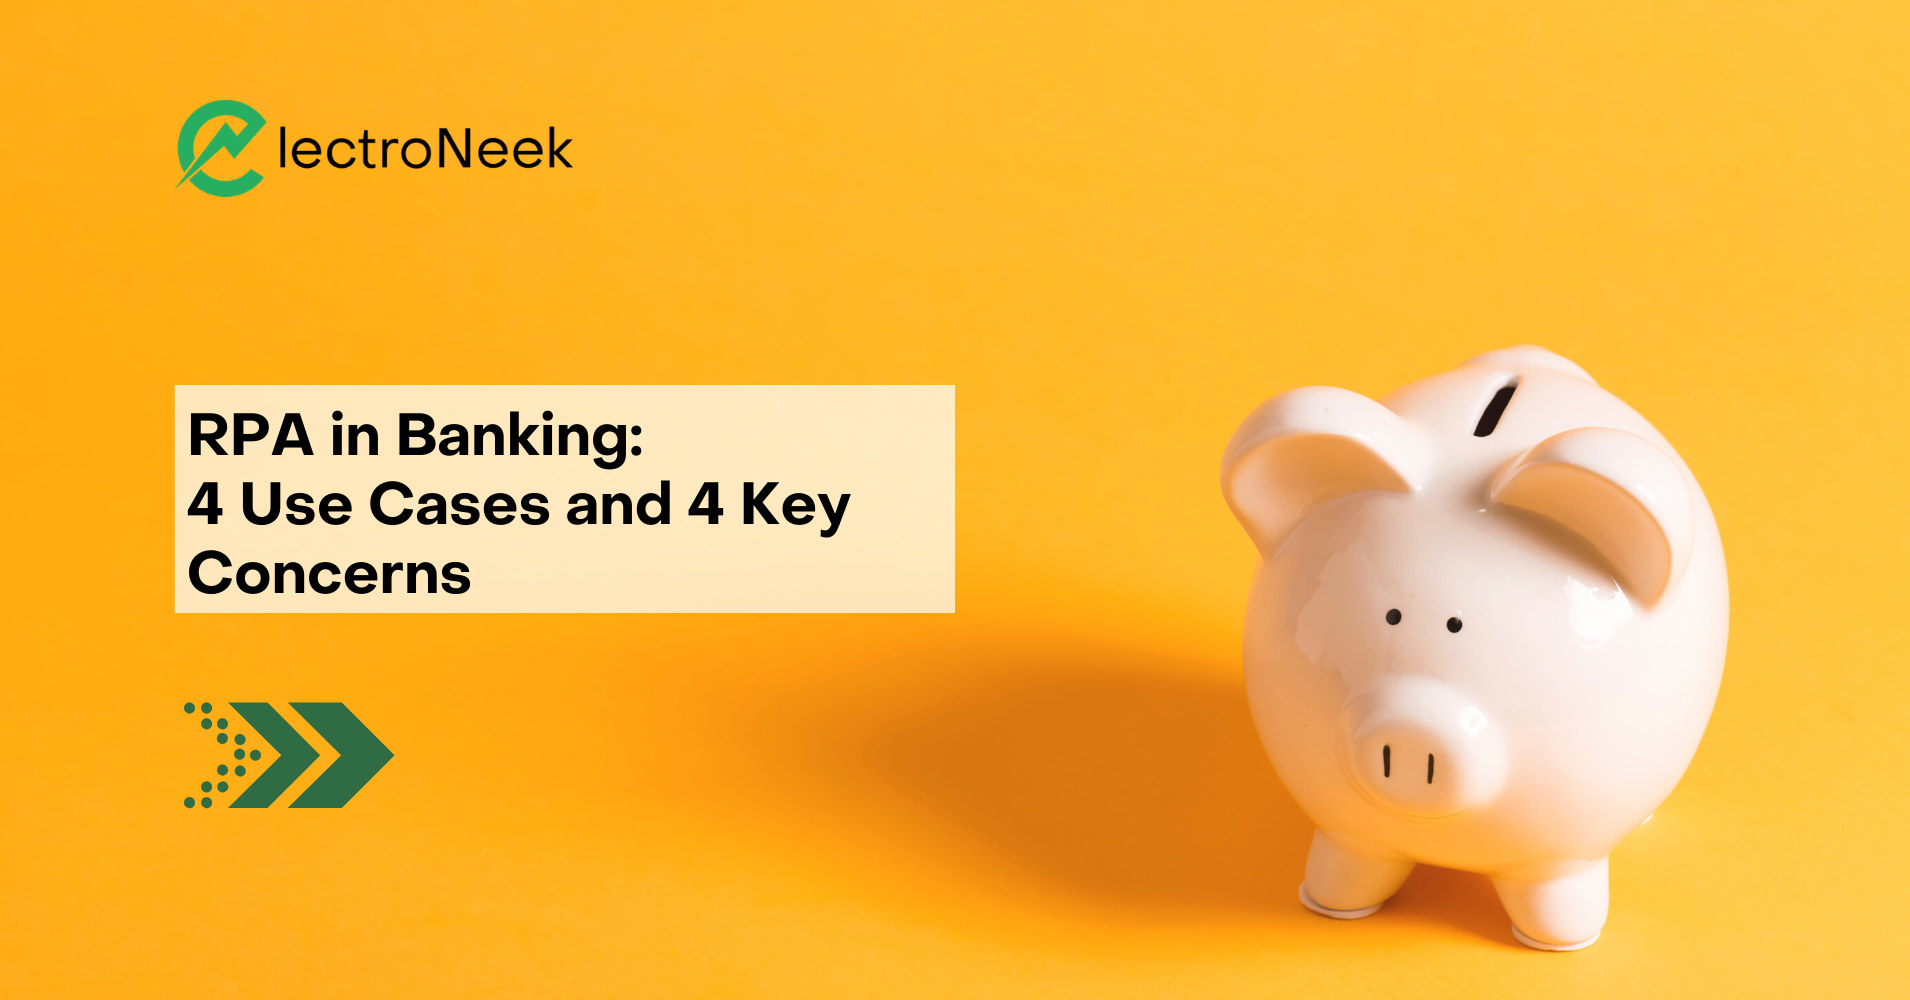 RPA in Banking: 4 Use Cases and 4 Key Concerns